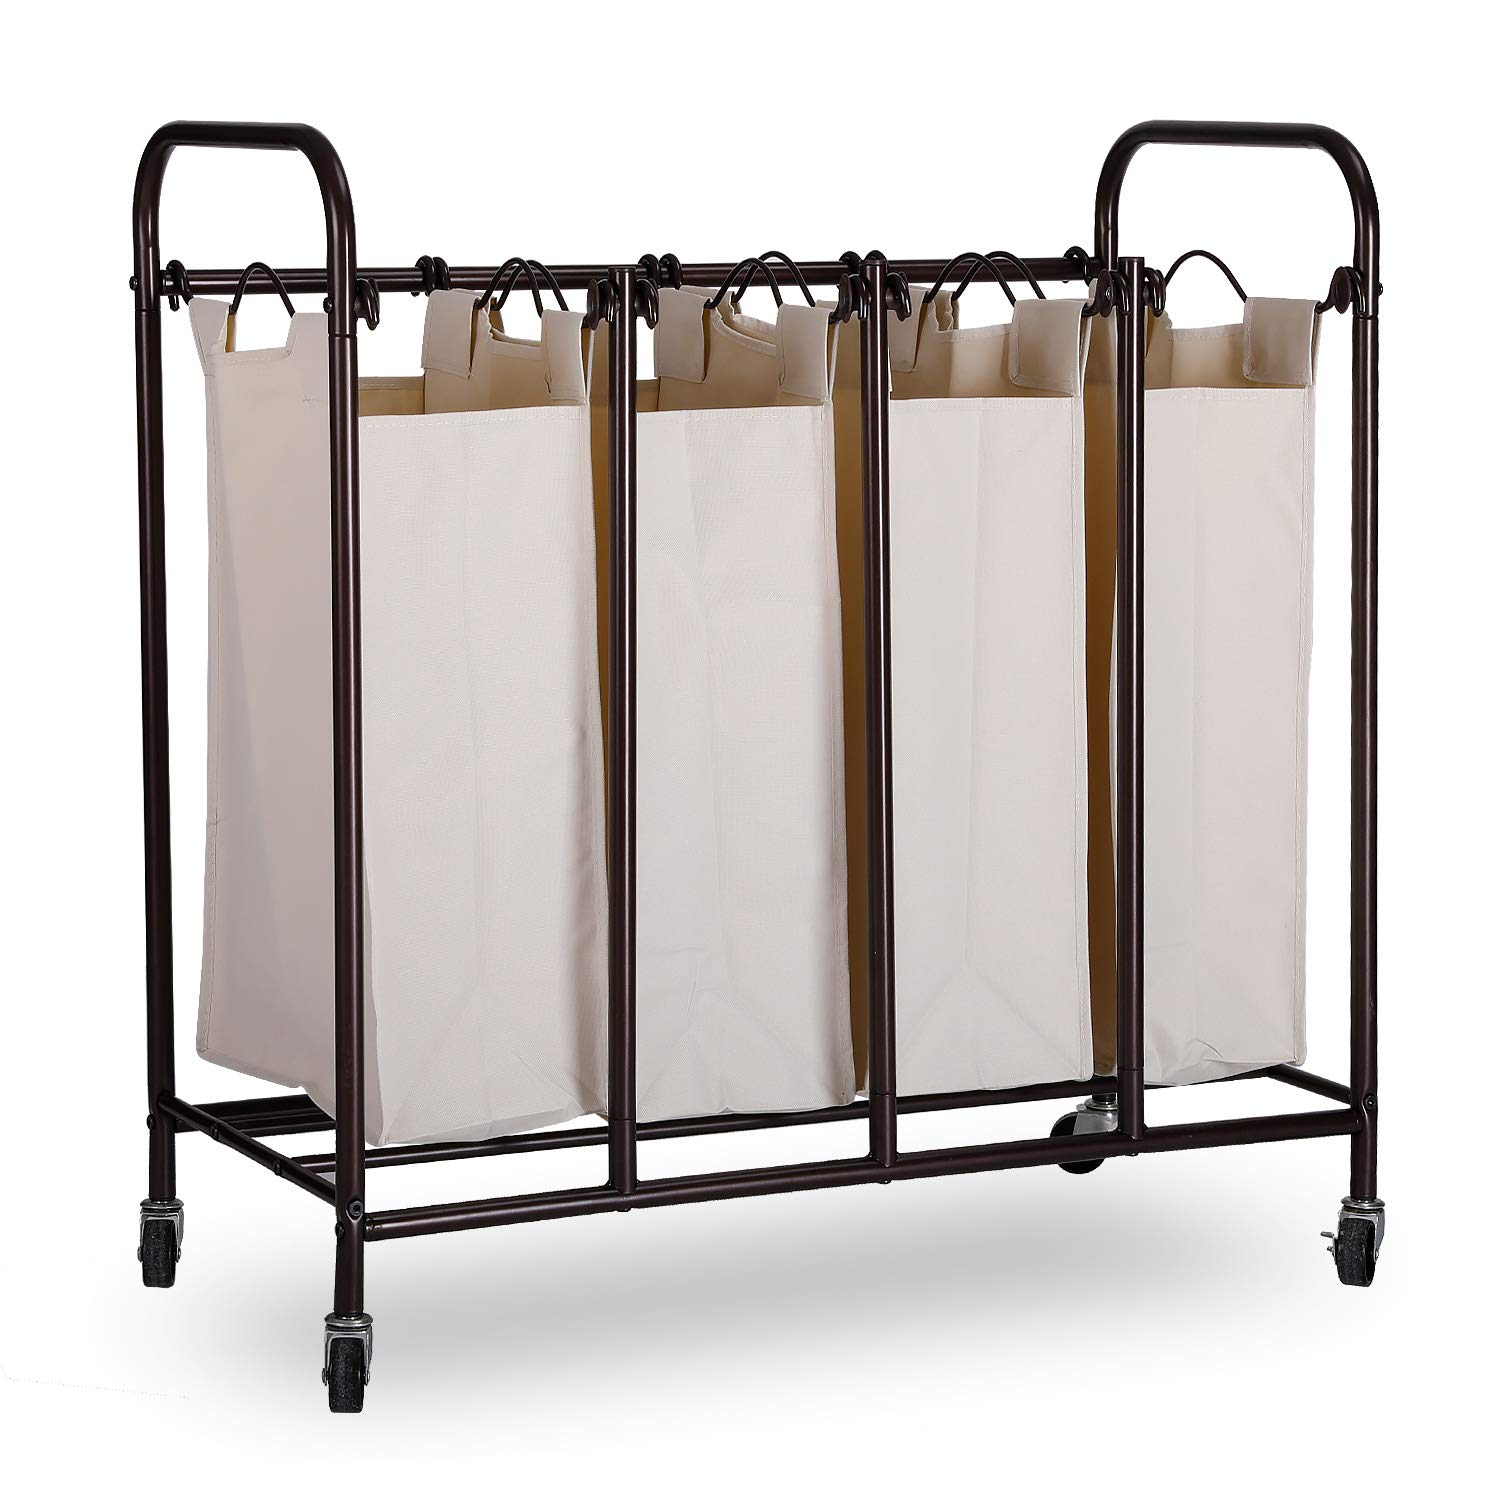 JZM Laundry Sorter Cart Easy Lifting Handles, a Sturdy Frame Heavy Duty casters. 4-Bag Laundry Hamper Sorter Cart YiCaiNianHua